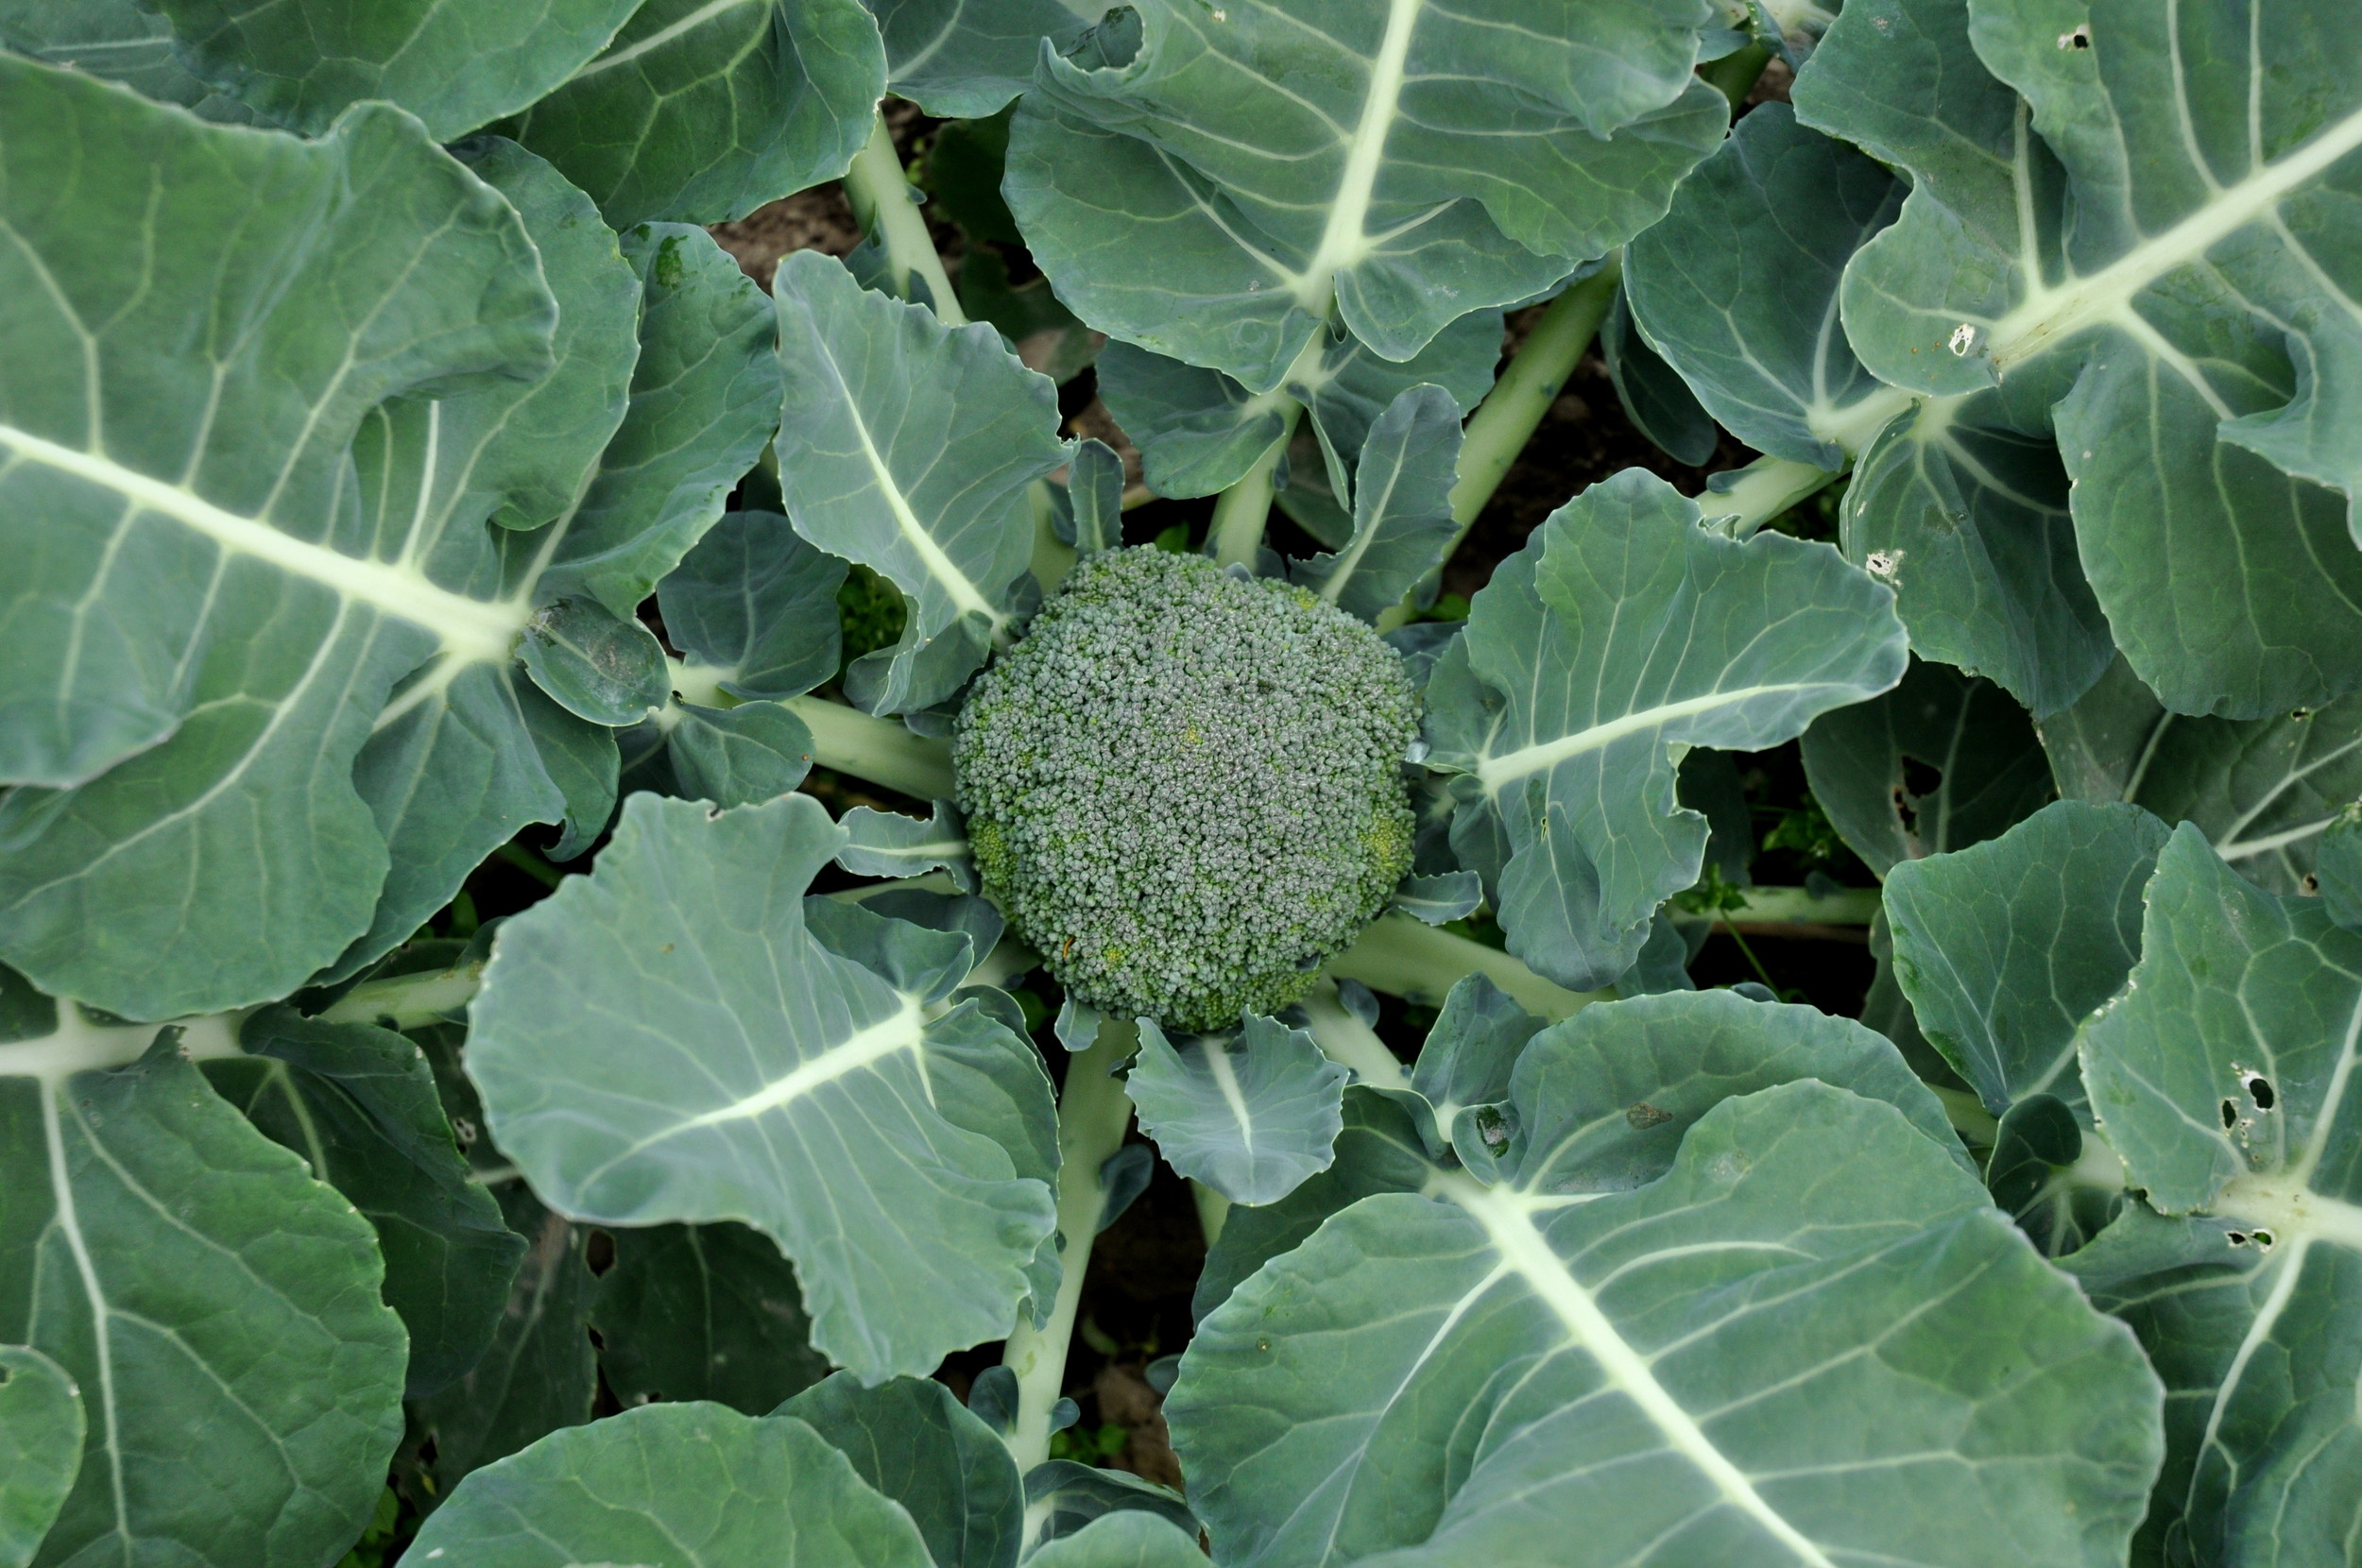 Broccoli in the field at Alm Hill Gardens. Copyright Zachary D. Lyons.